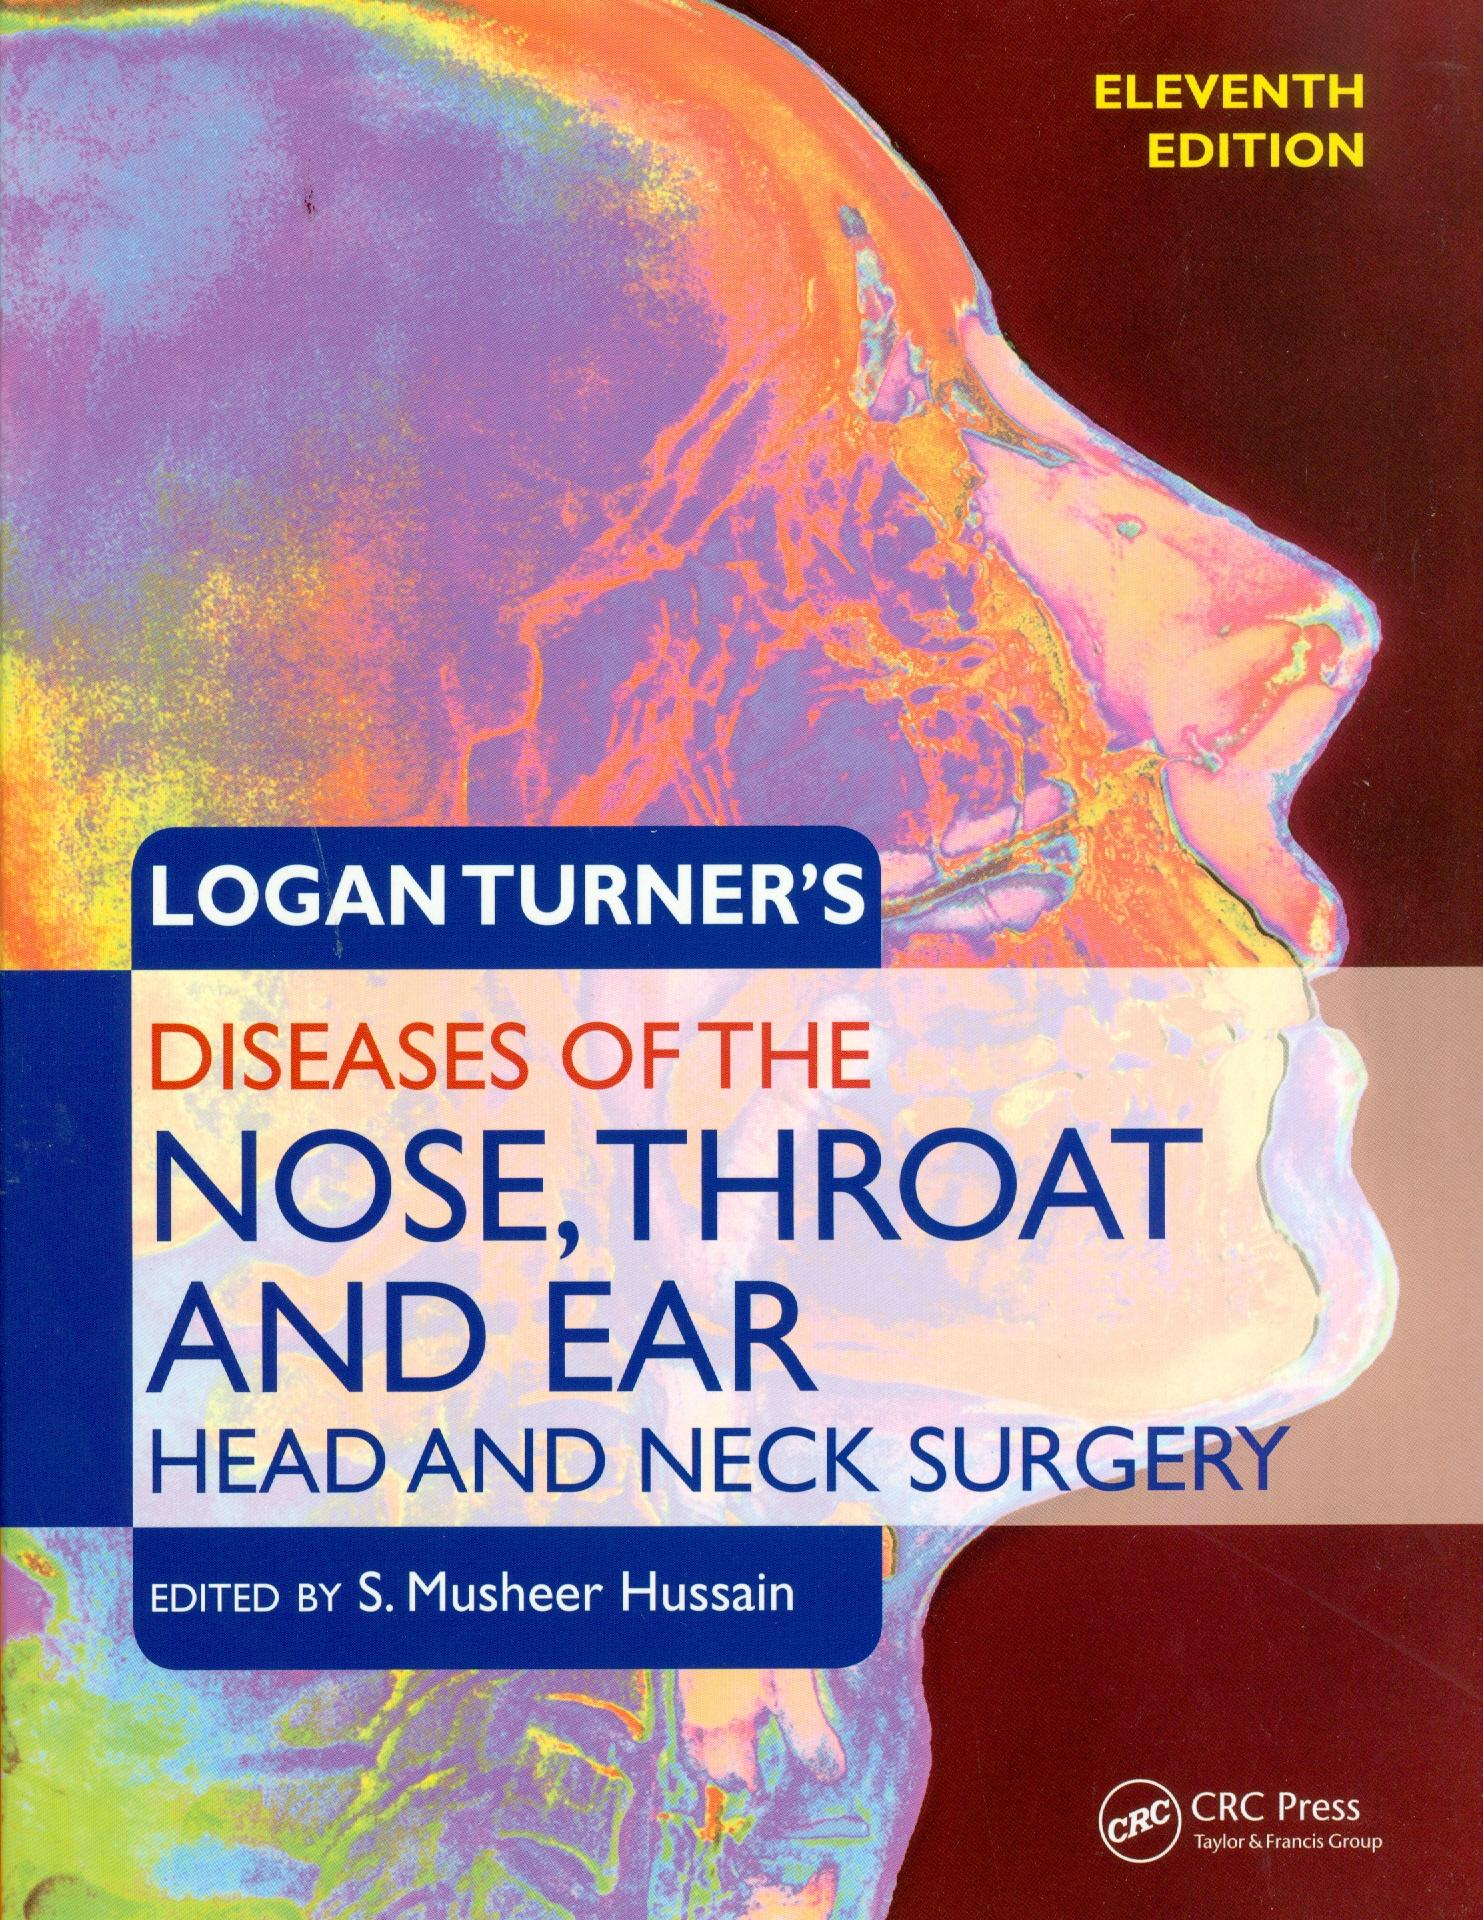 Logan Turner`s Diseases of the Nose, Throat and Ear: Head and Neck Surgery, 11th edition